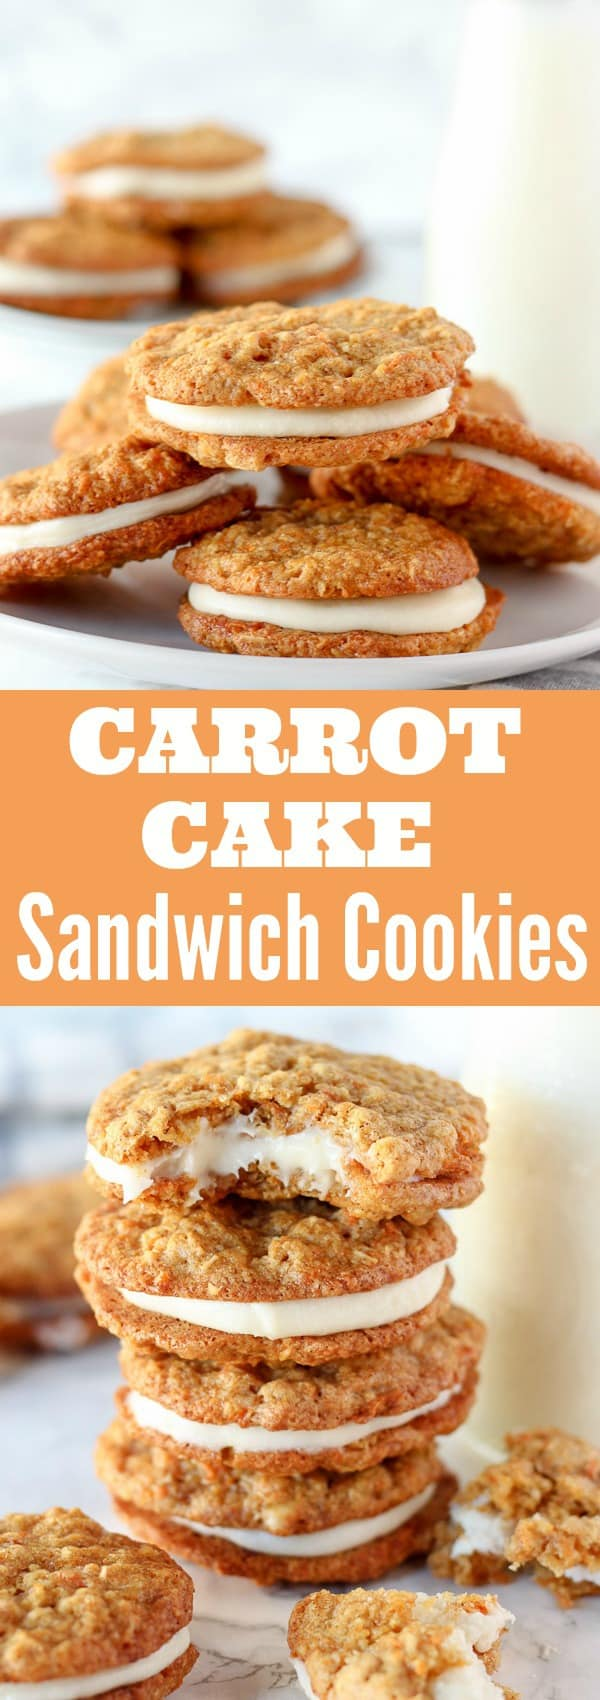 Carrot Cake Sandwich Cookies Cooking Light